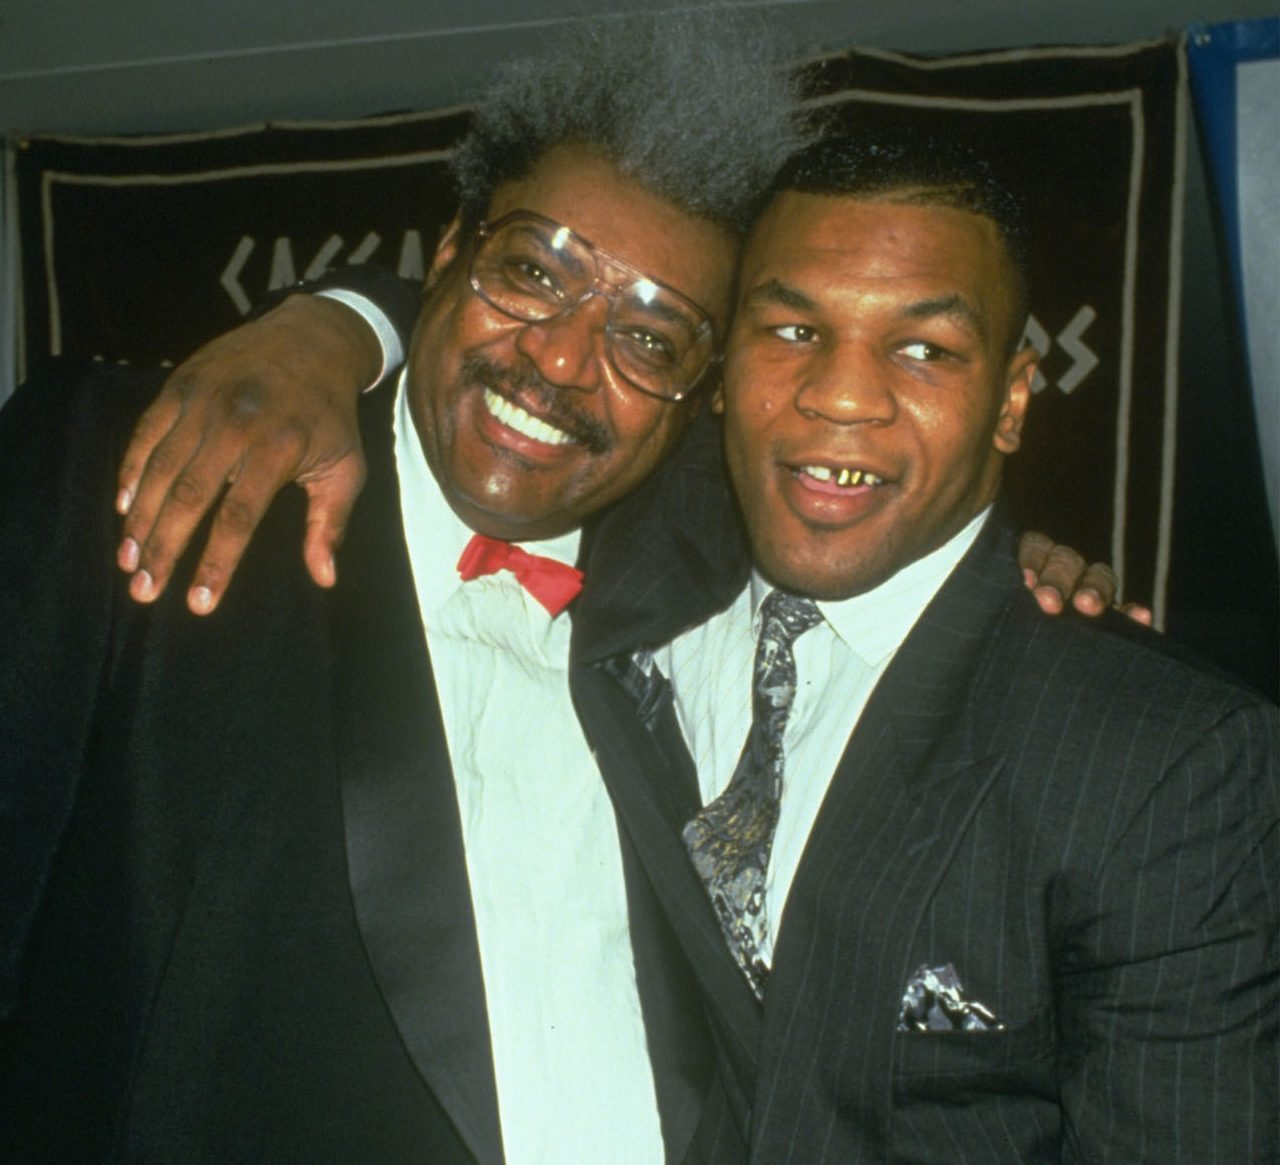 gettyimages 812666 e1625654681311 25 Things You Never Knew About Iron Mike Tyson